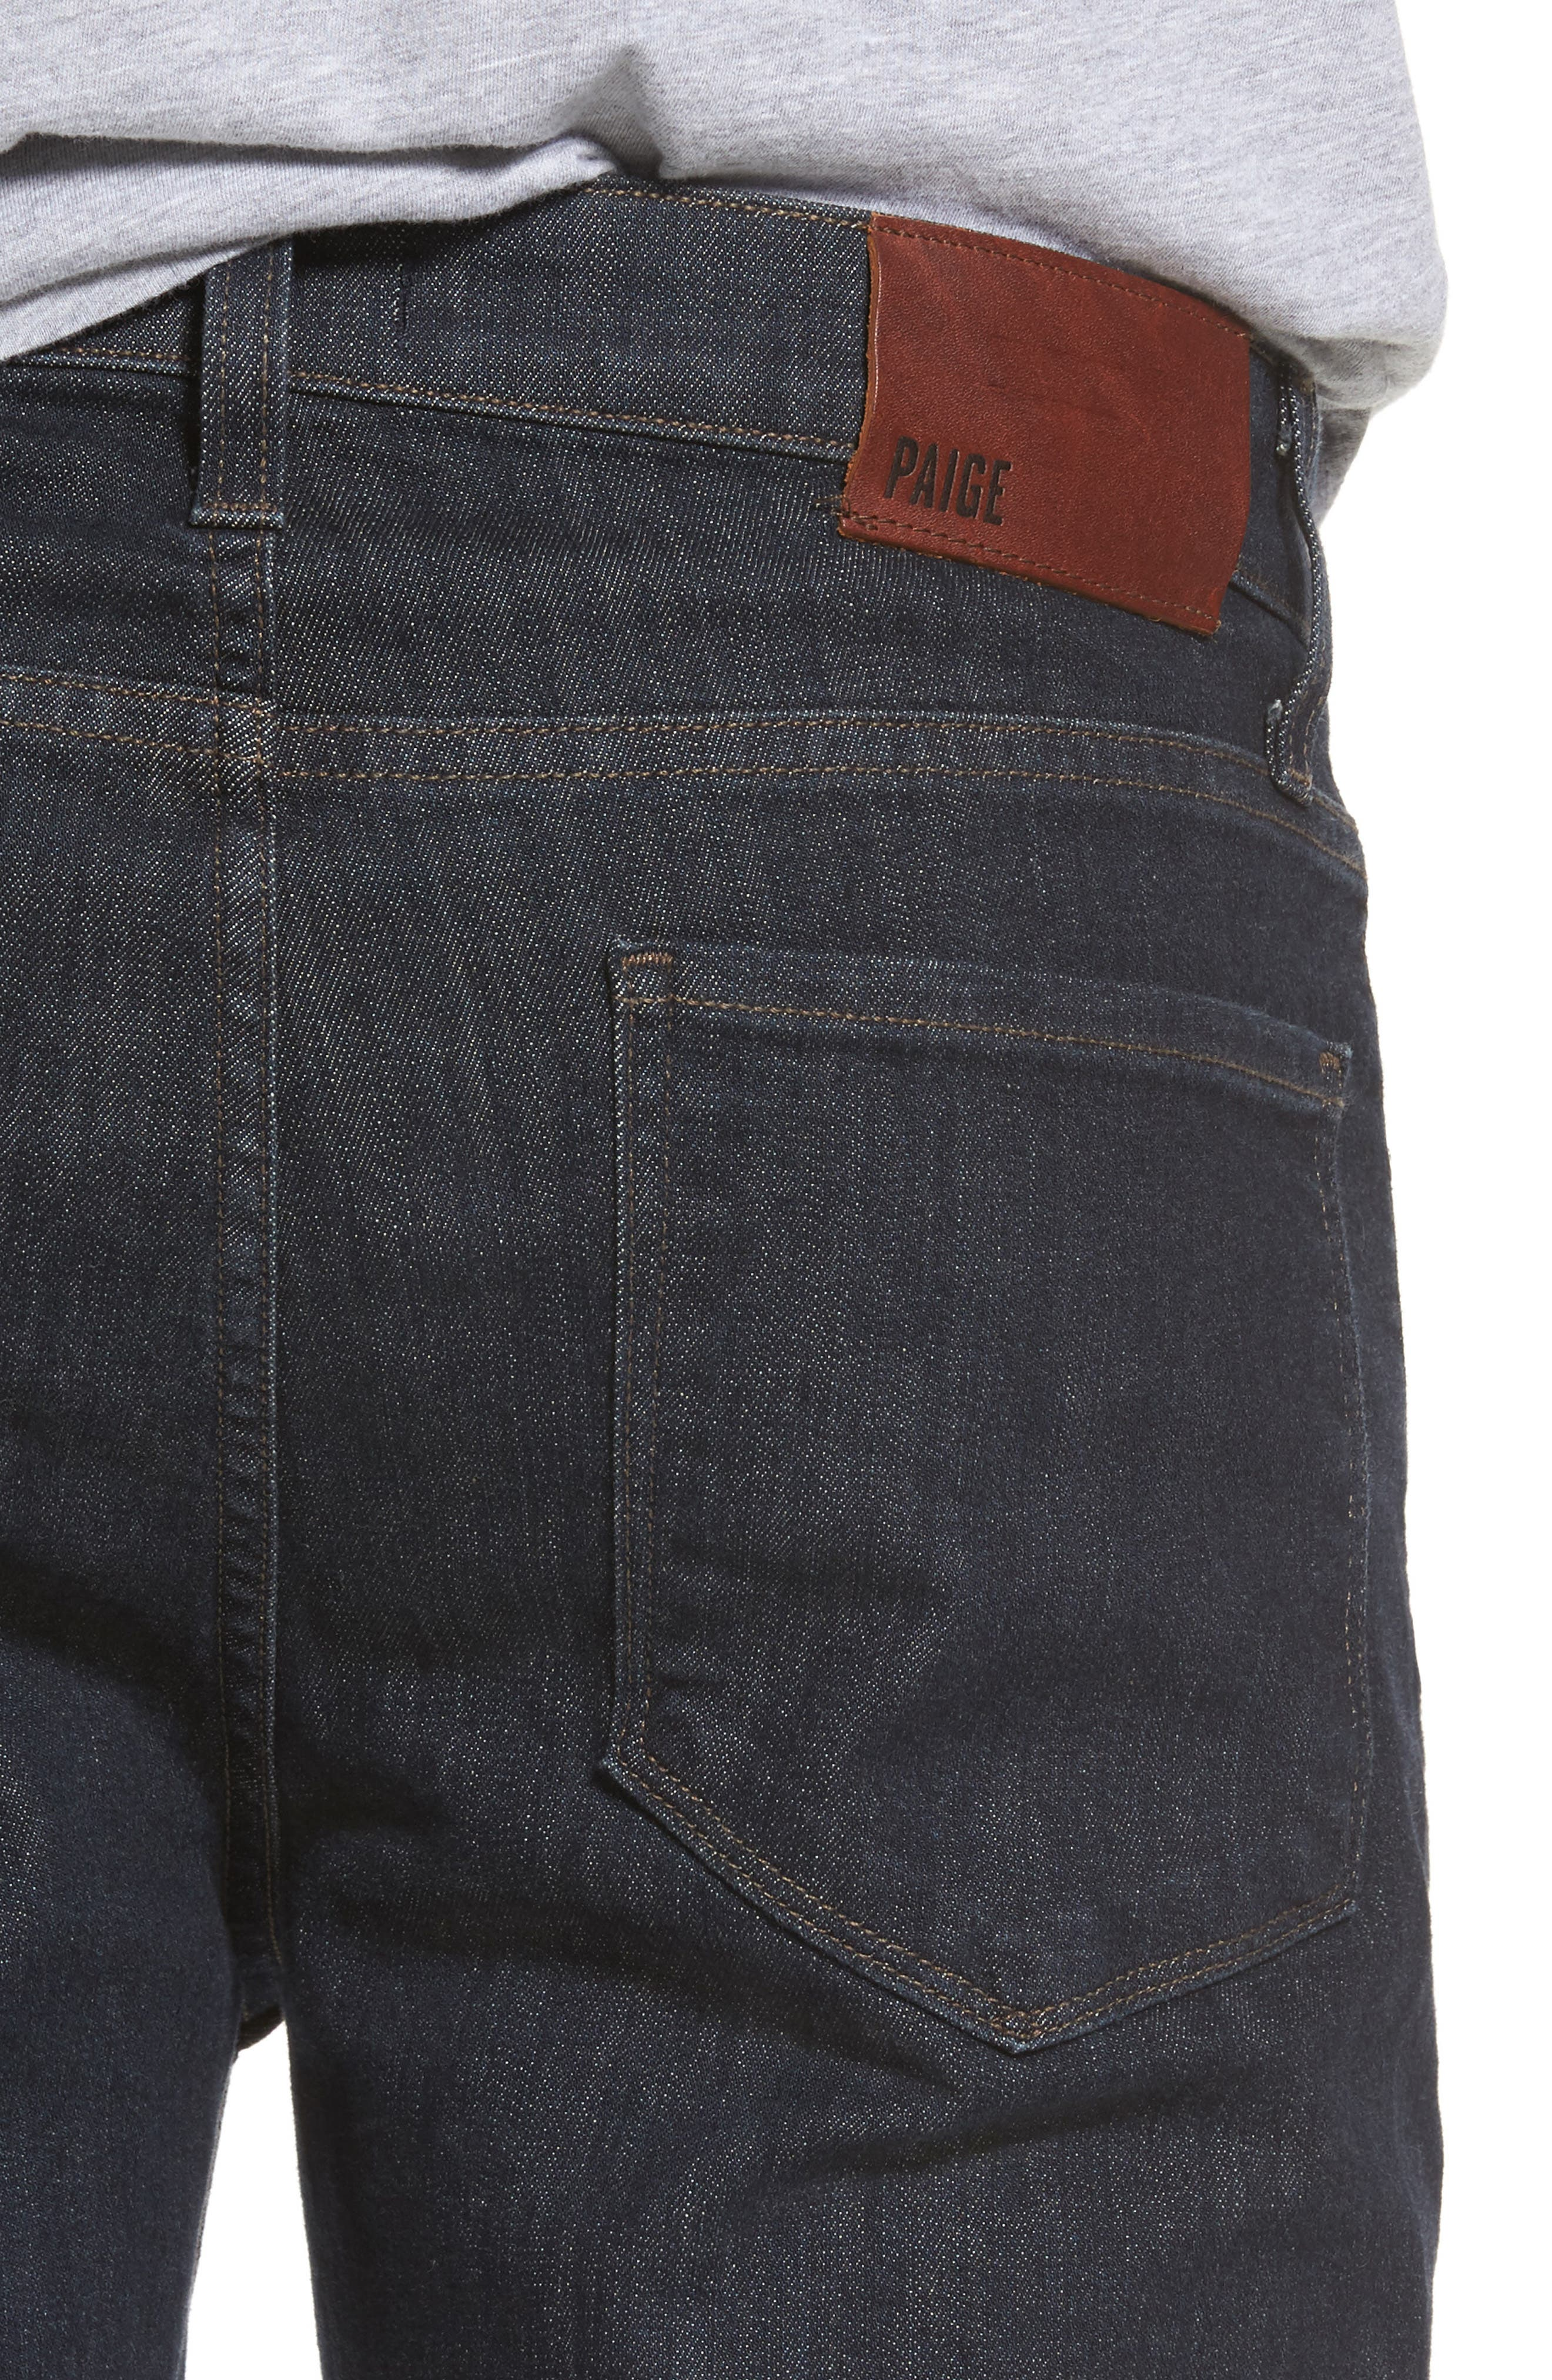 Legacy - Croft Skinny Fit Jeans,                             Alternate thumbnail 4, color,                             400